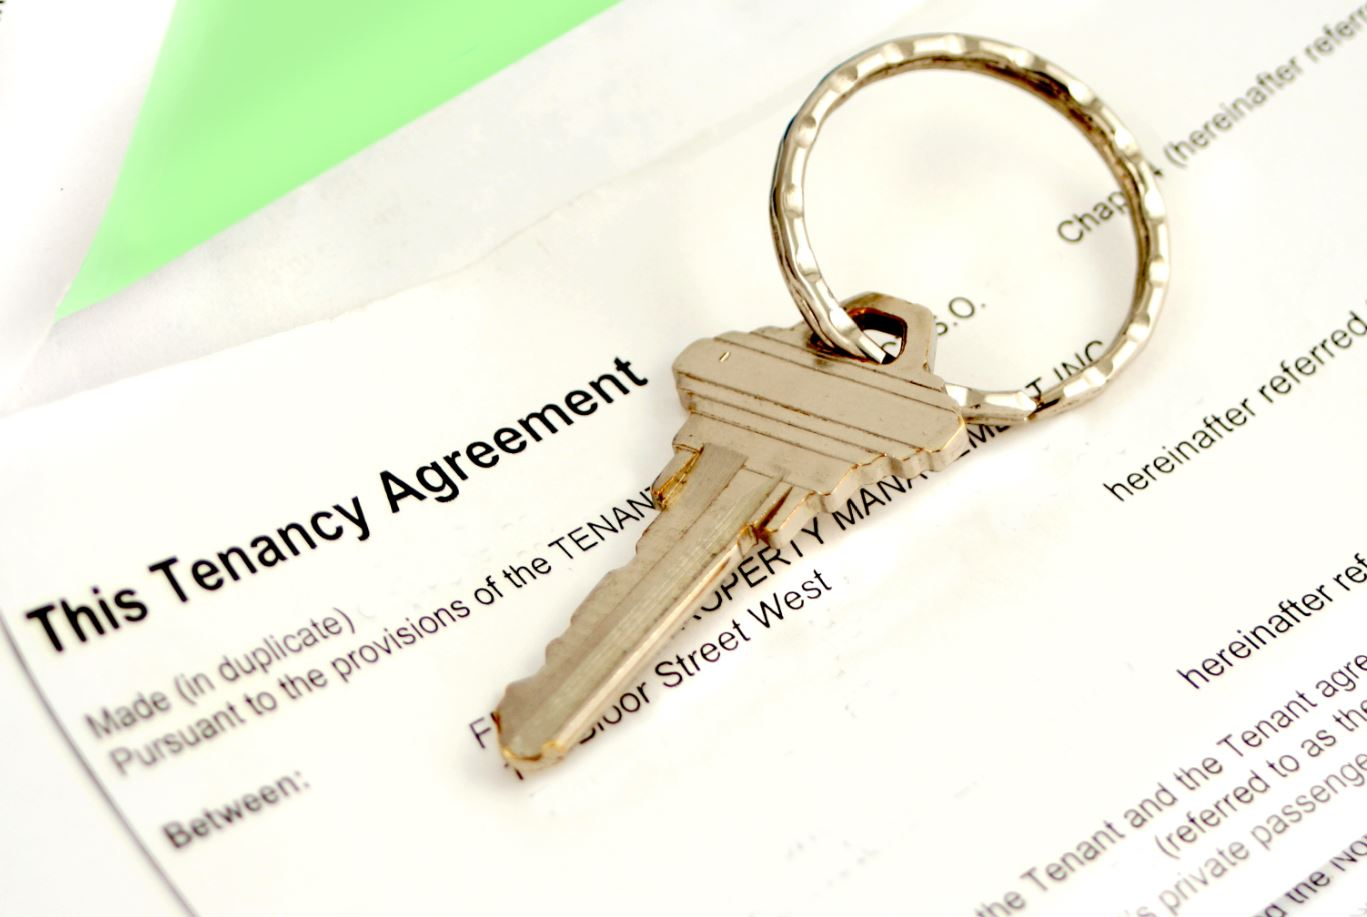 access denied, what does a tenant need to do (or not do) in order to 'permit' access?